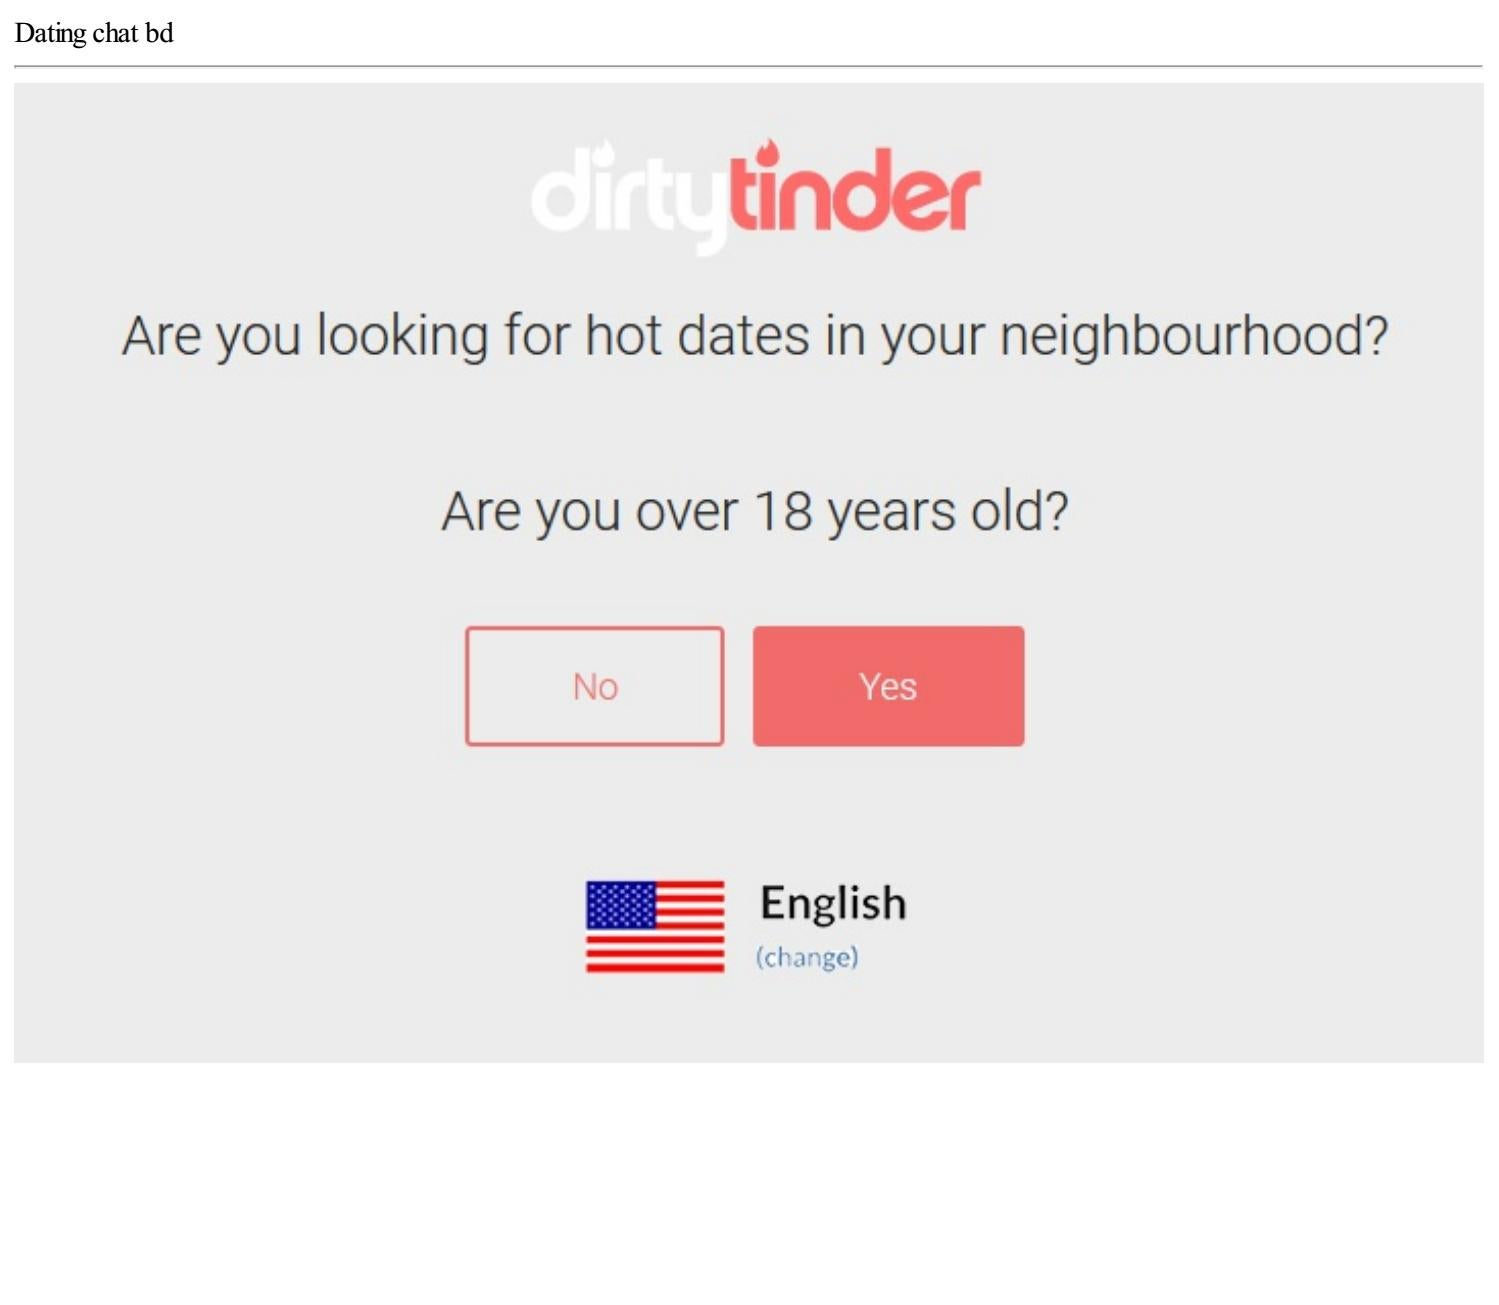 Bd dating chat